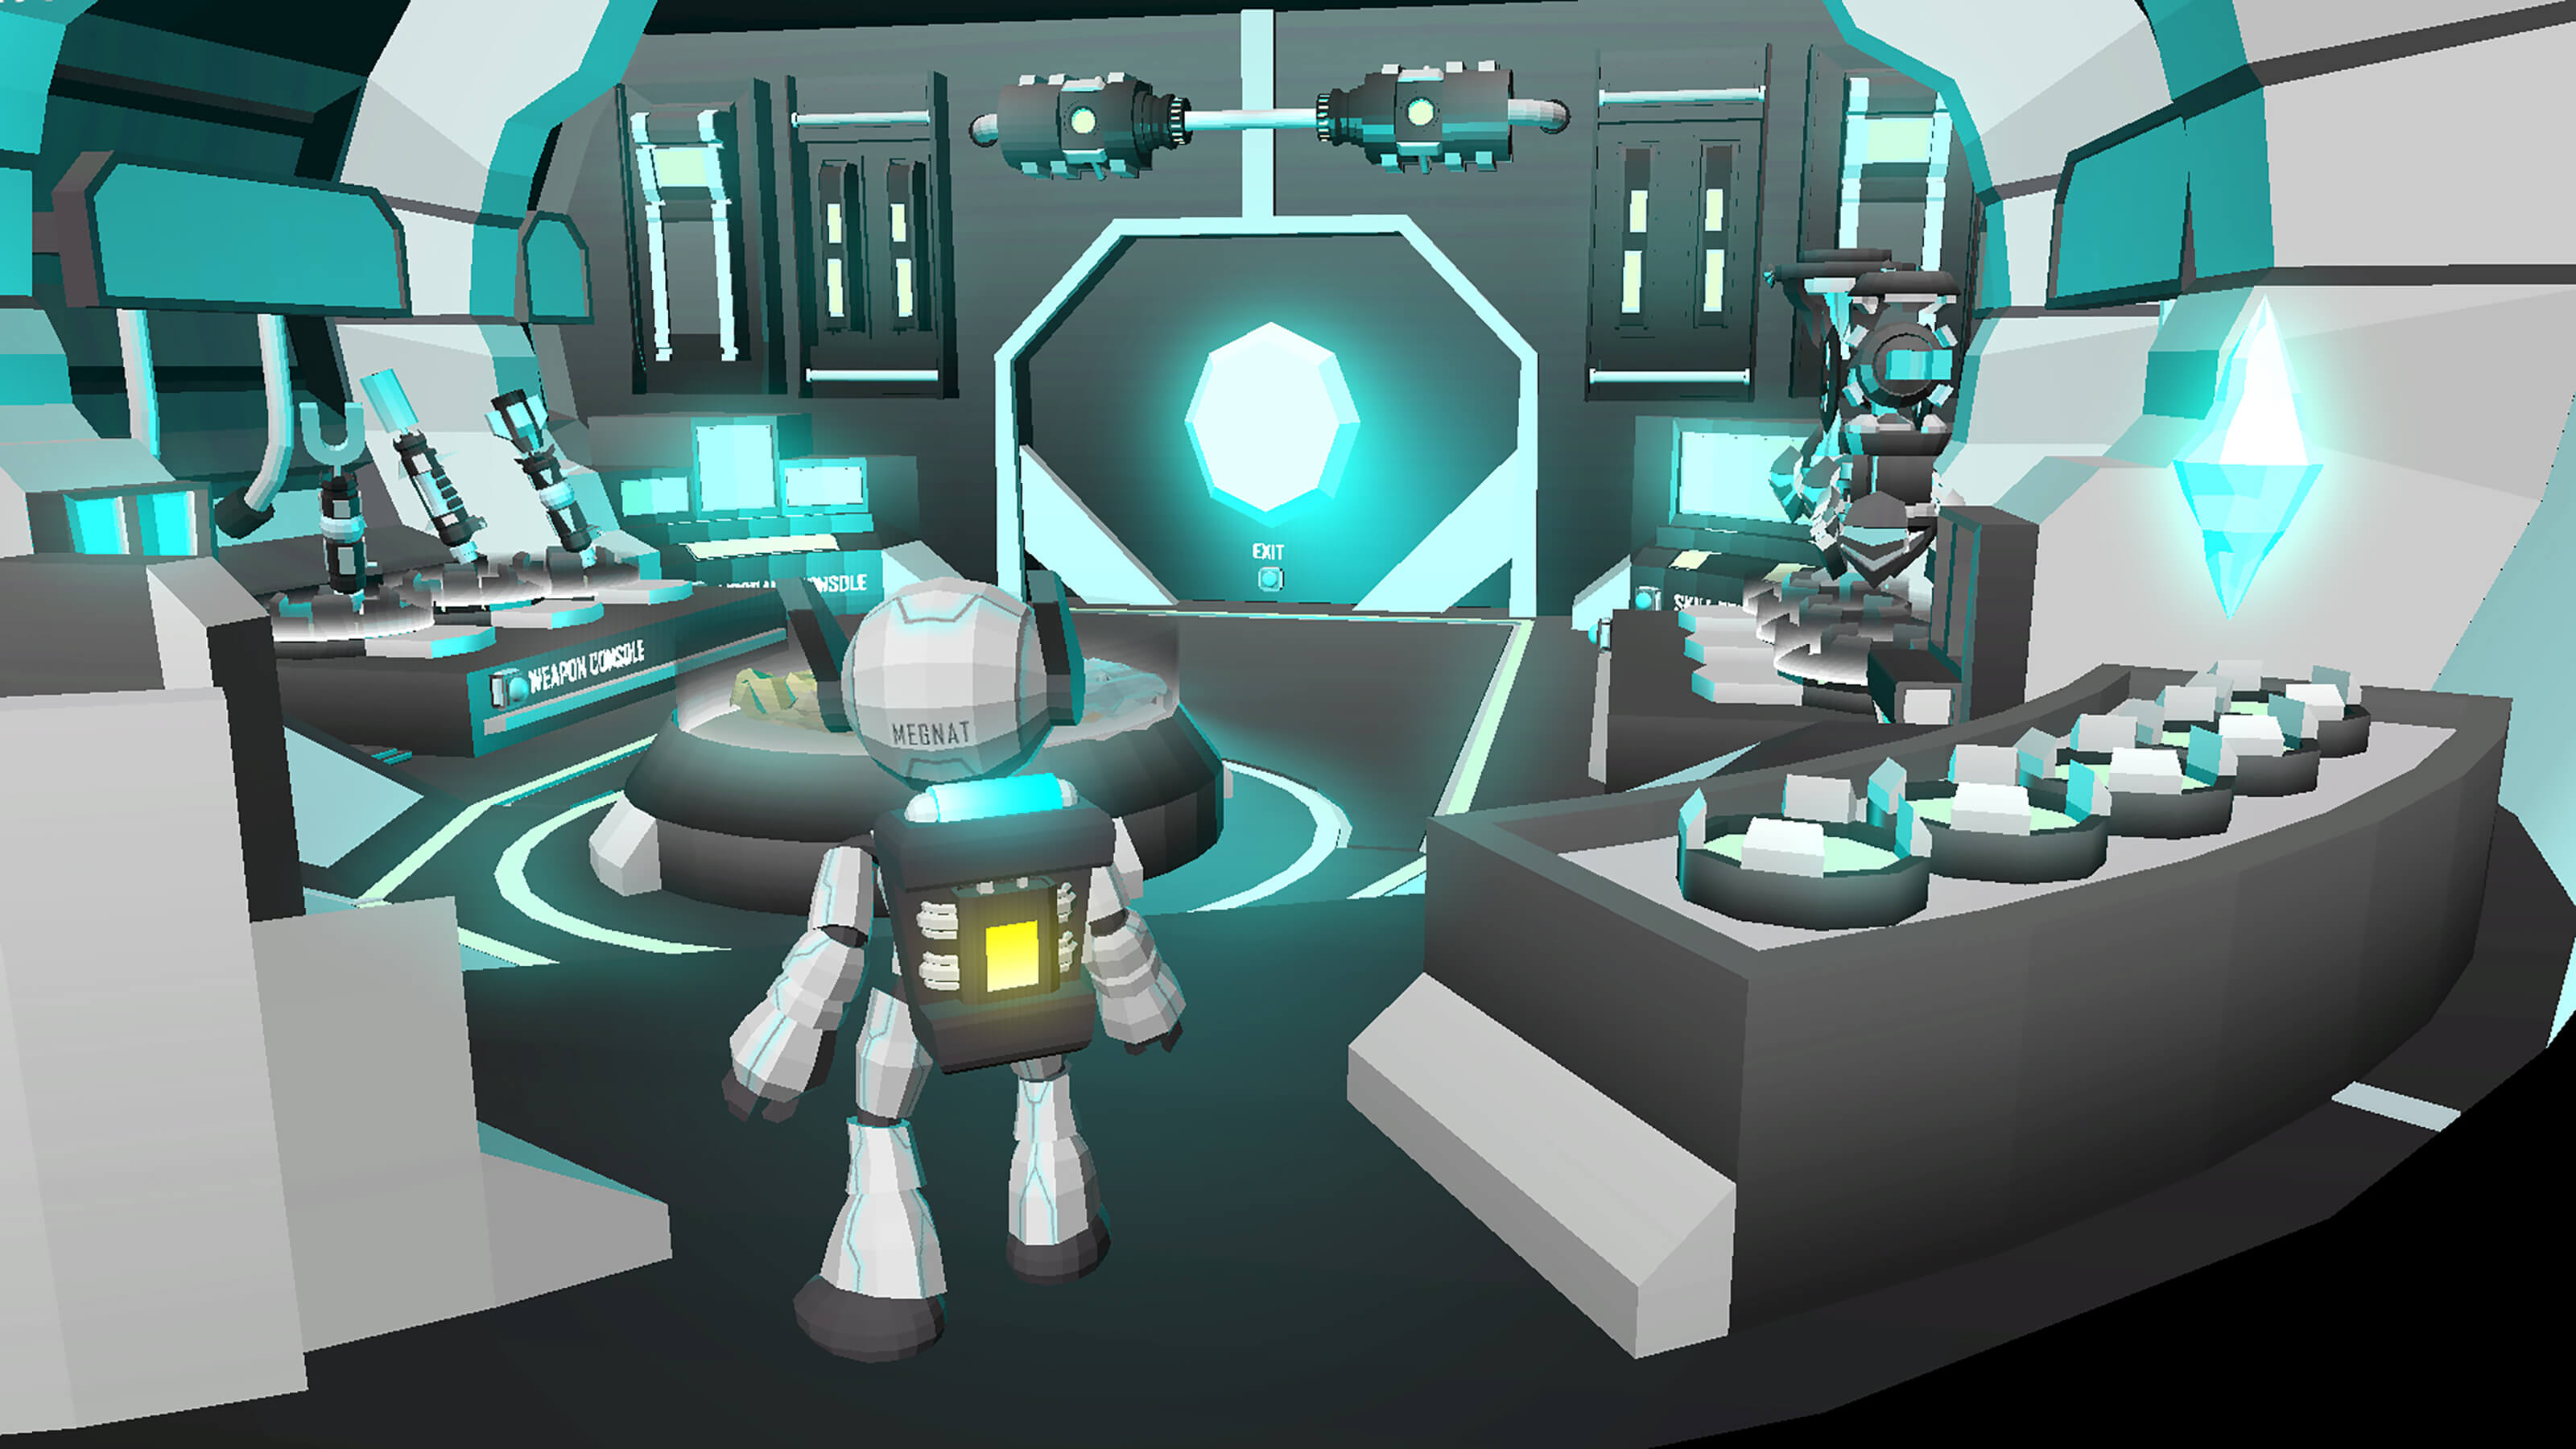 A futuristic white robot seen from behind standing in a blue-hued laboratory filled with technological consoles.